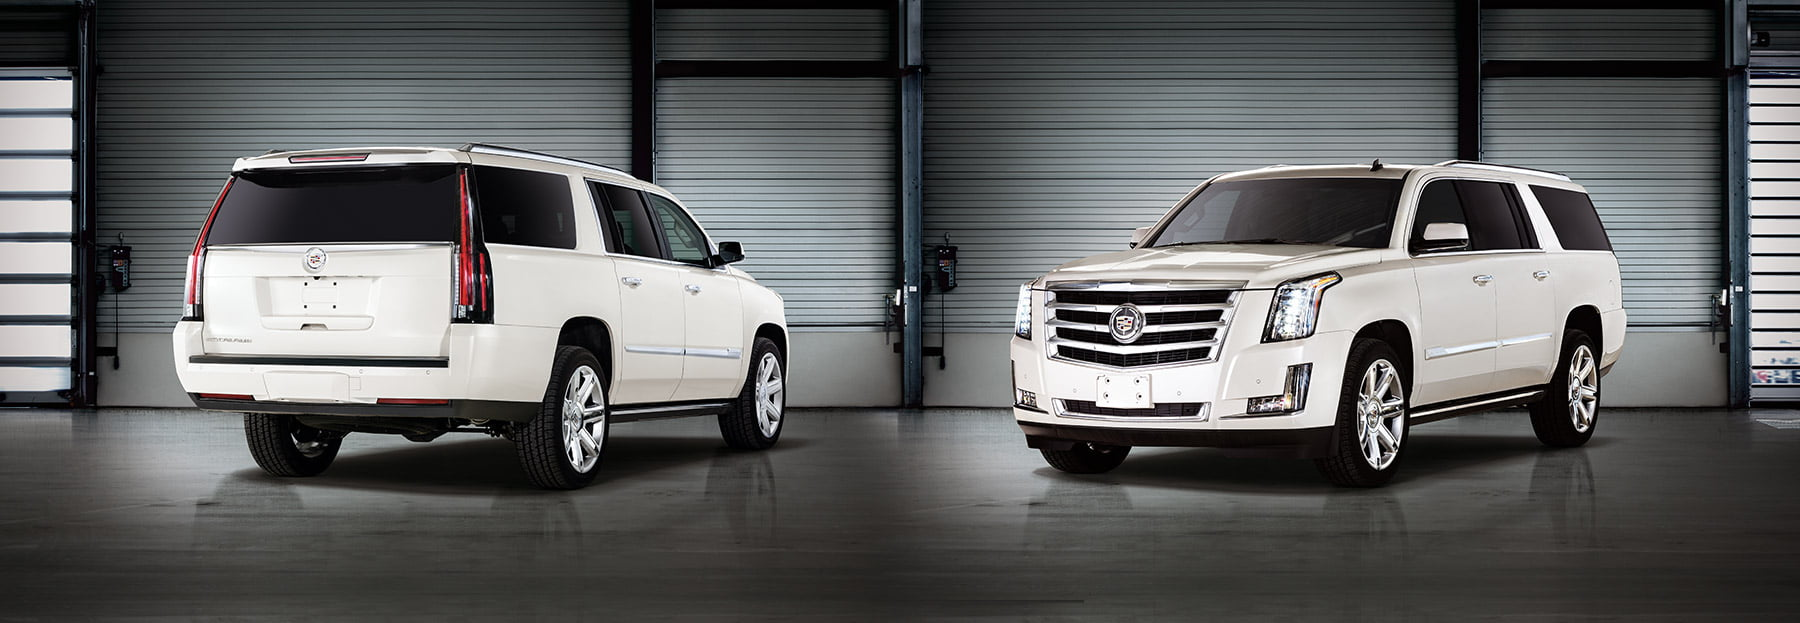 cadillac escalade luxury vehicle suv american